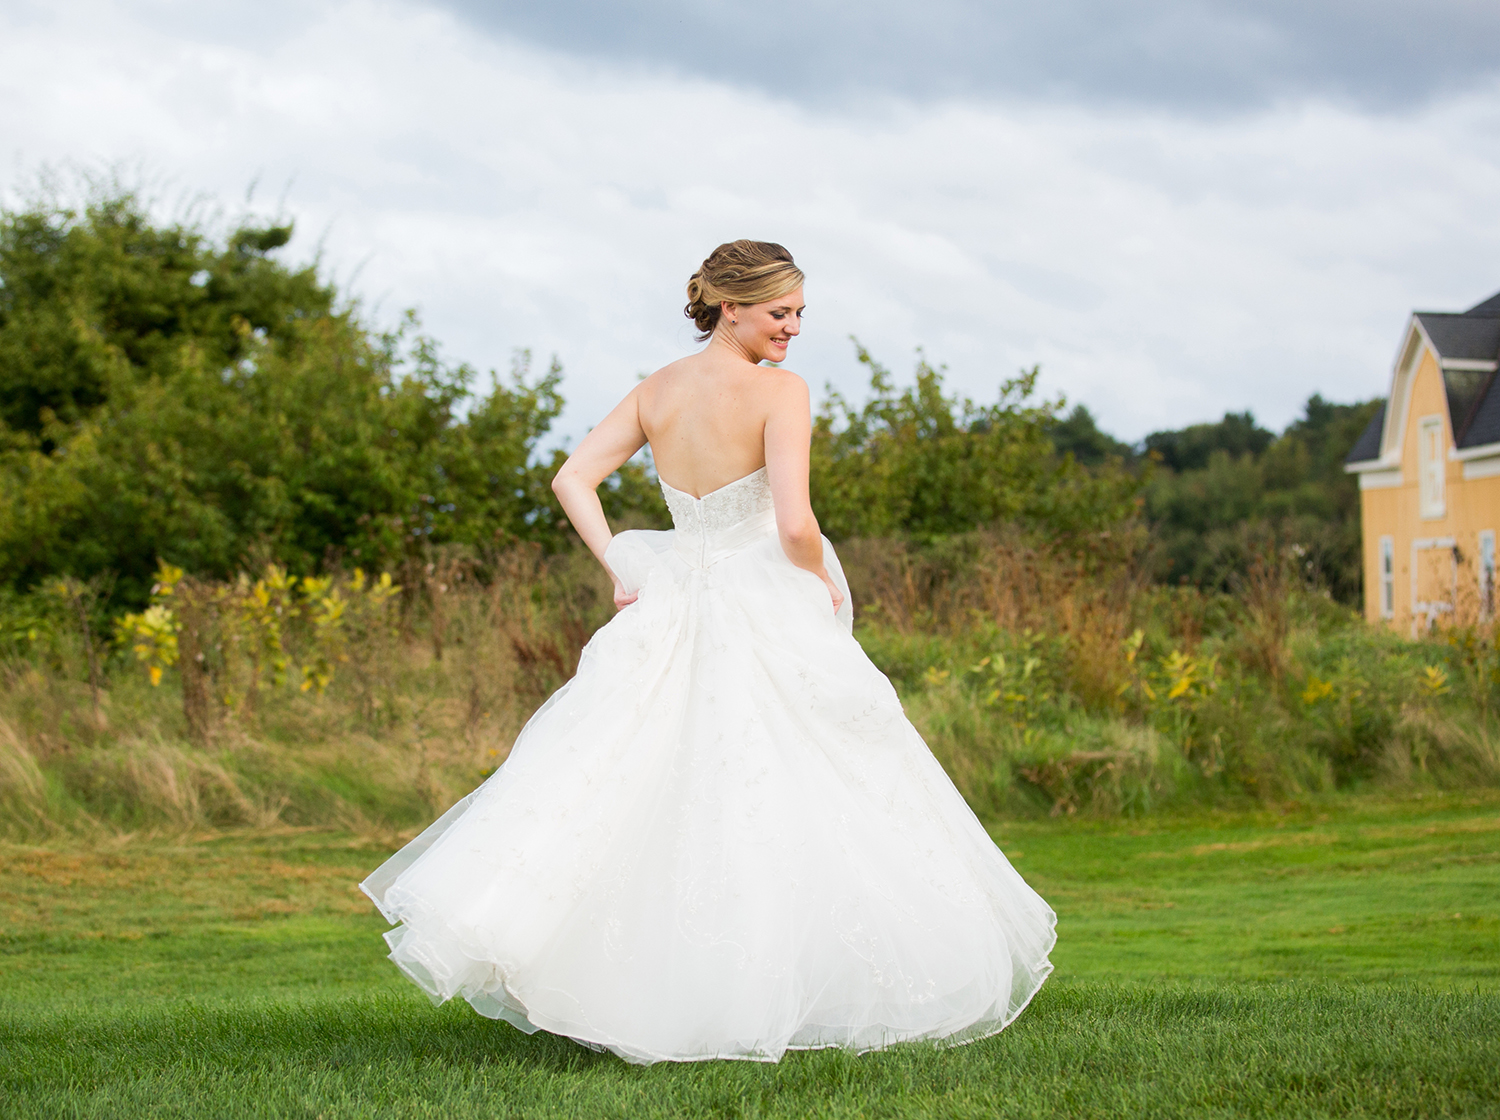 FallWedding_TheRanchWedding_MichelleGirardPhotography01.jpg